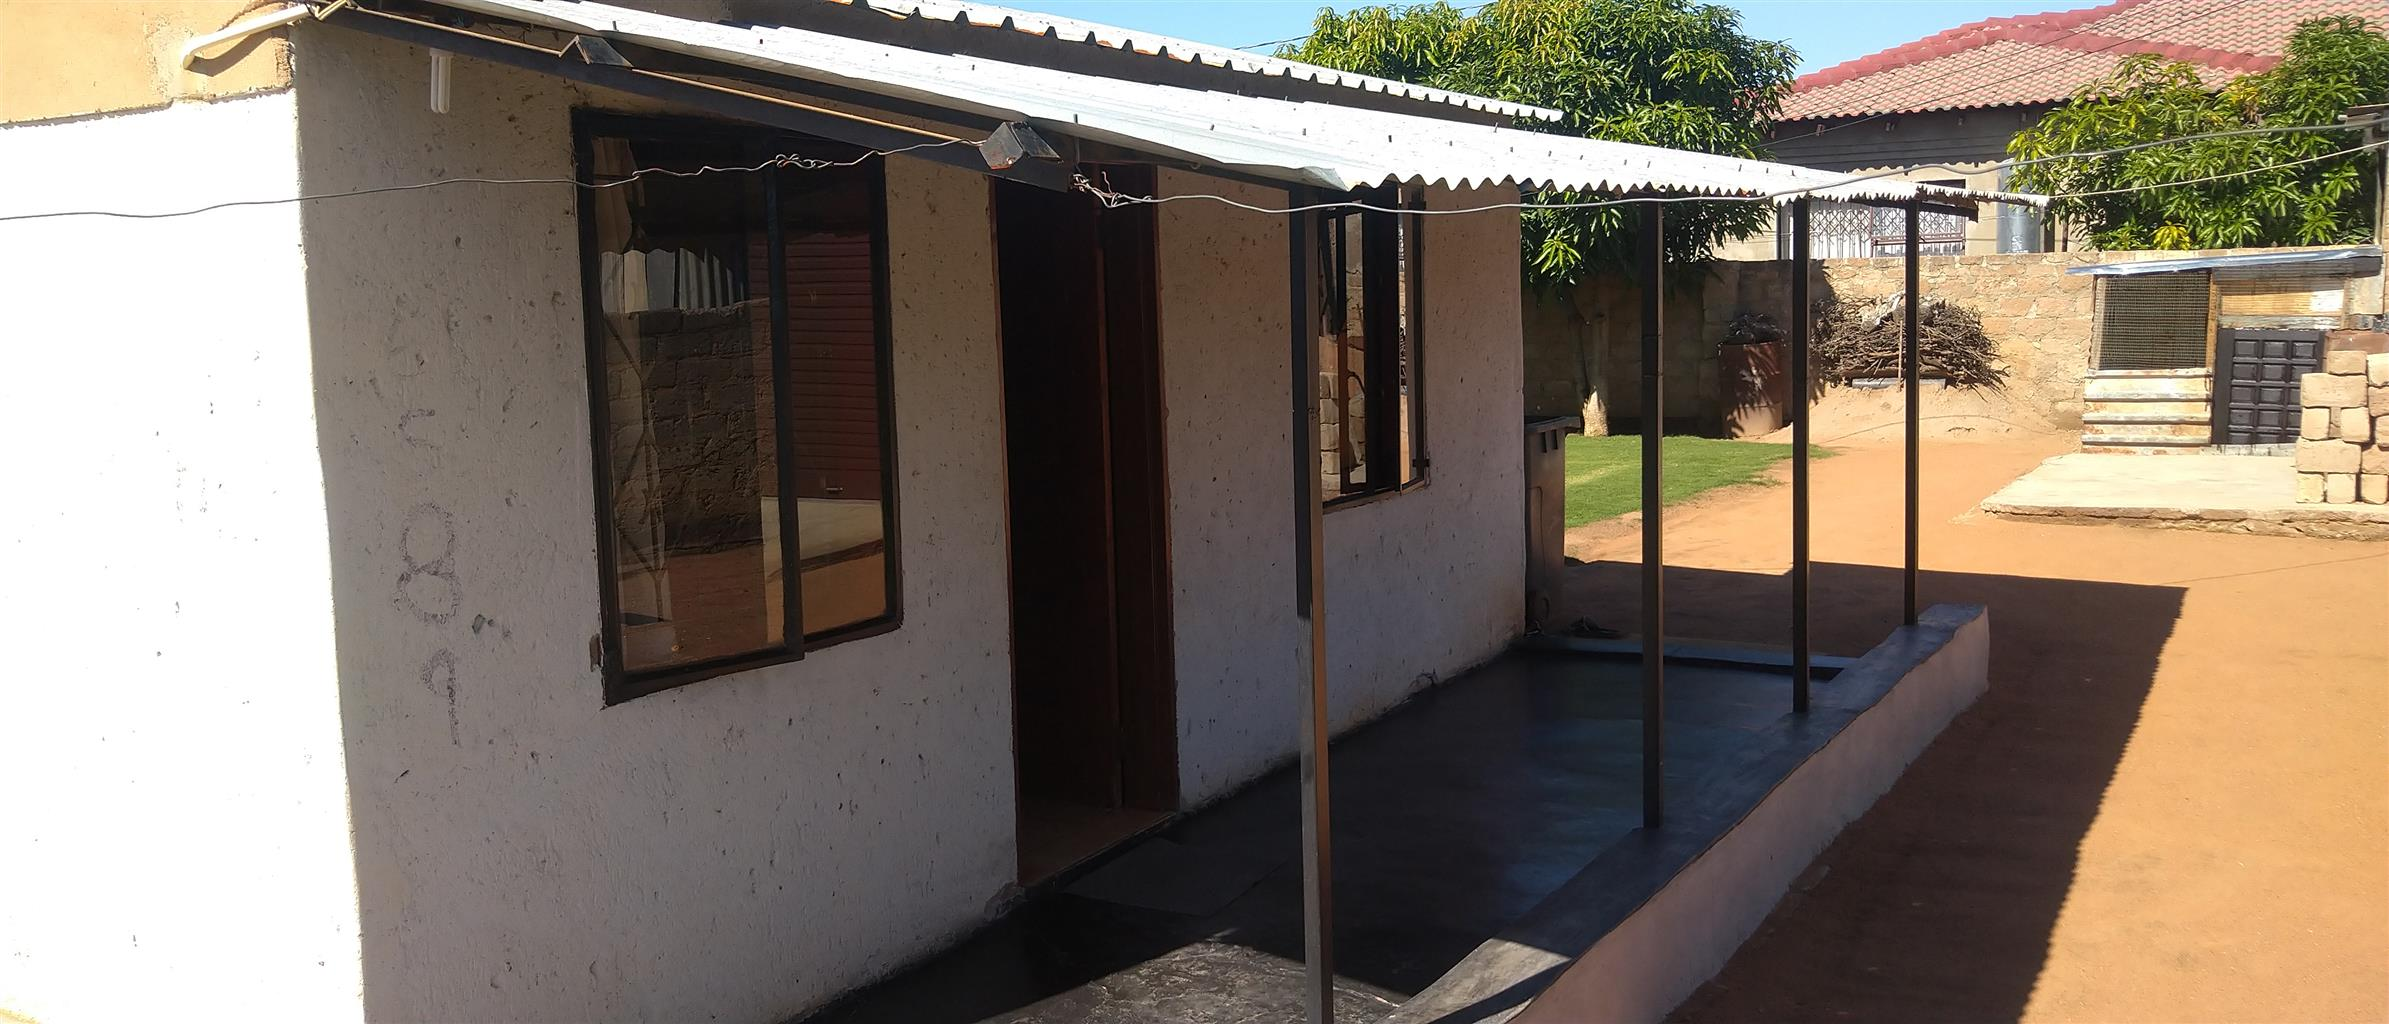 Reduced prece, 1 bedroom house and a garage in temba ext7 hammanskraal close to mall